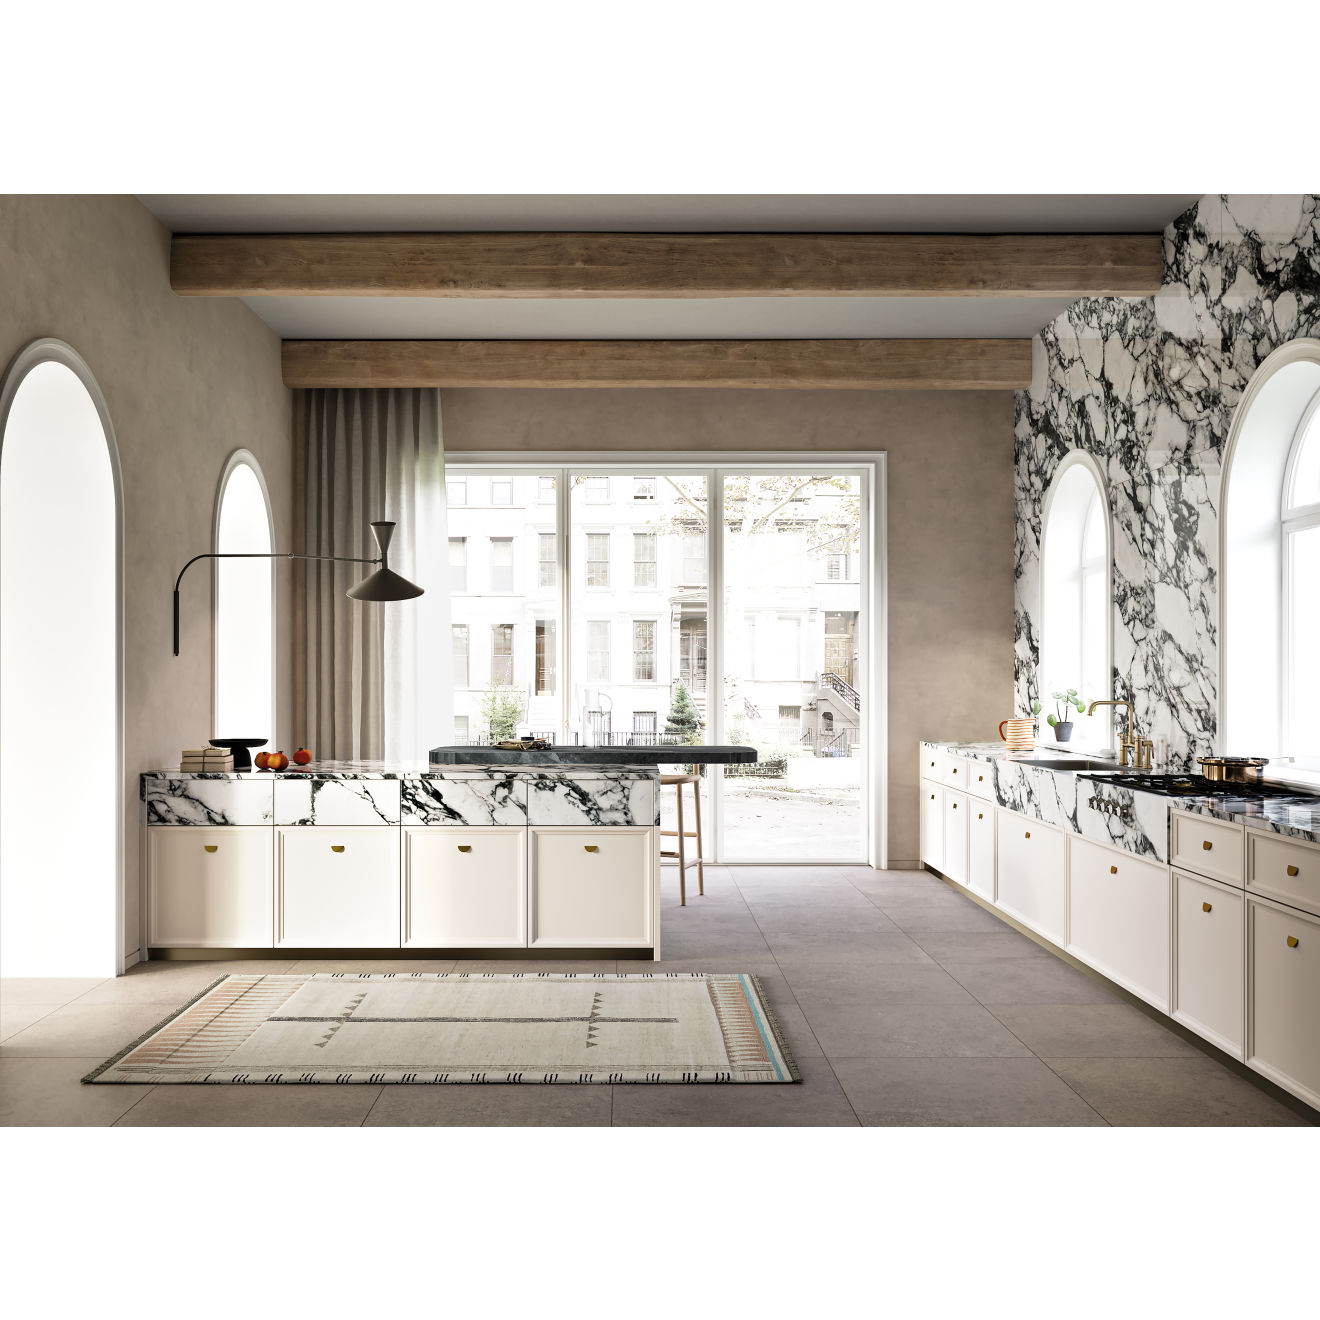 Magnifica 30 X 30 Floor Wall Tile In Cementi Bedrosians Tile Stone